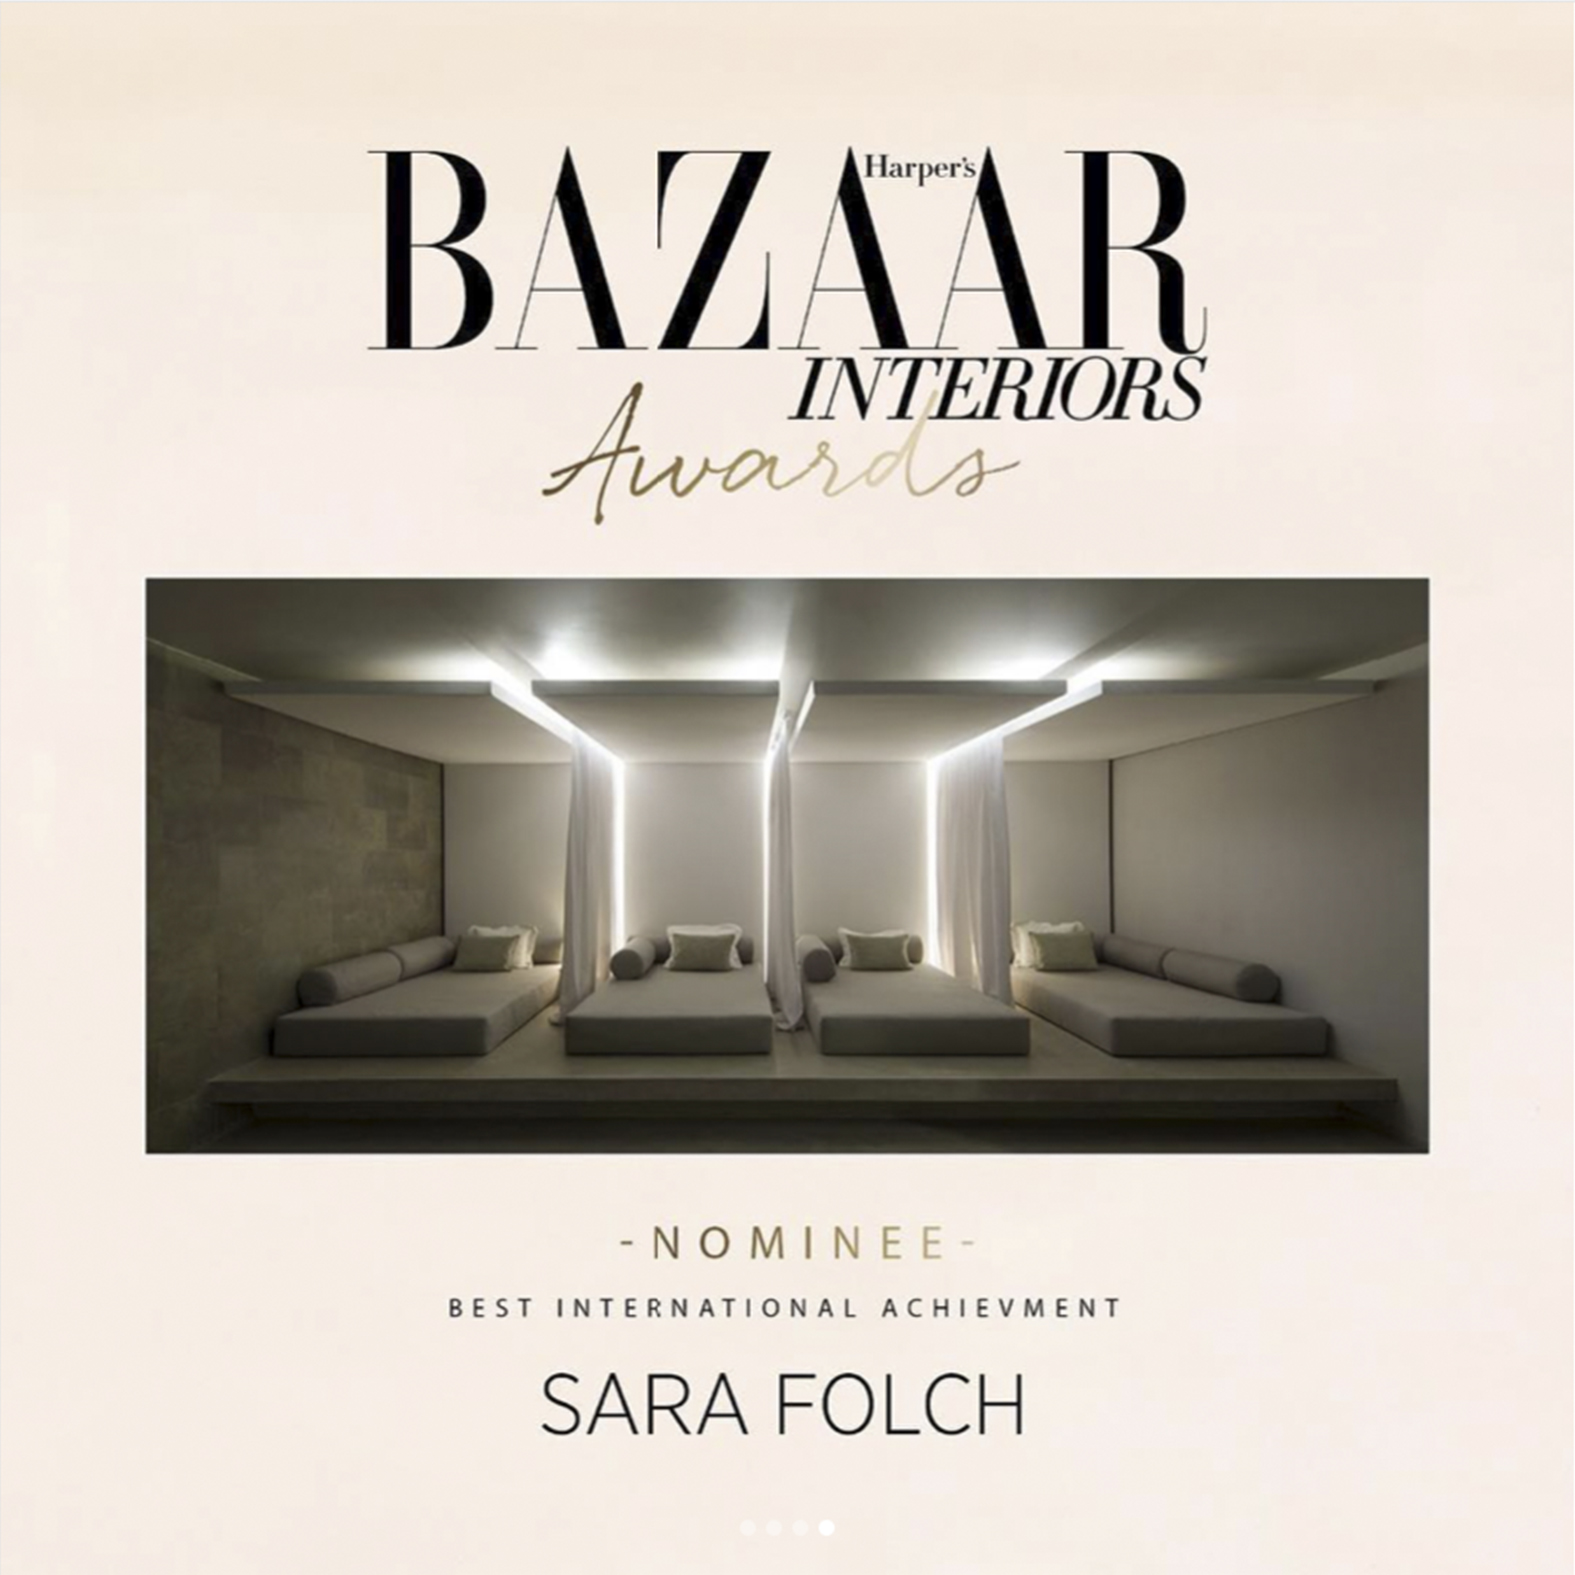 Sara Folch Interior Design shorlisted for Harpers Bazaar Interior Awards 2018